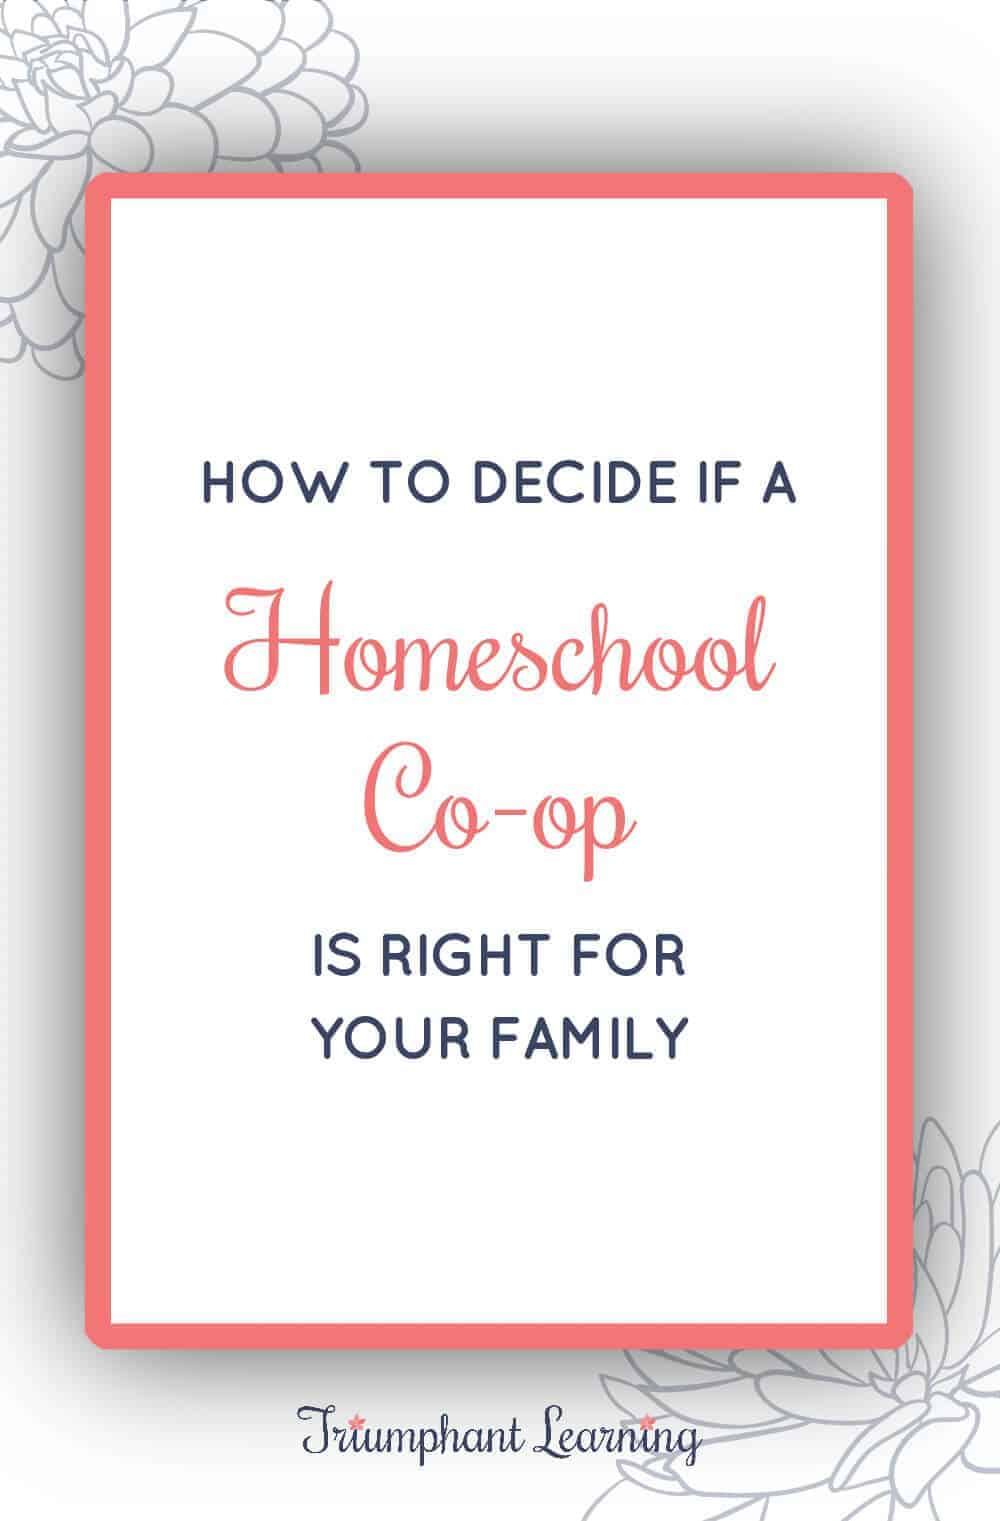 Is a homeschool co-op a good fit for your family? Co-ops are a great option for many families, but they're not a good fit for every family. Learn the pros and cons of co-ops, different types of co-ops, and how to decide if one is right for your family. via @TriLearning